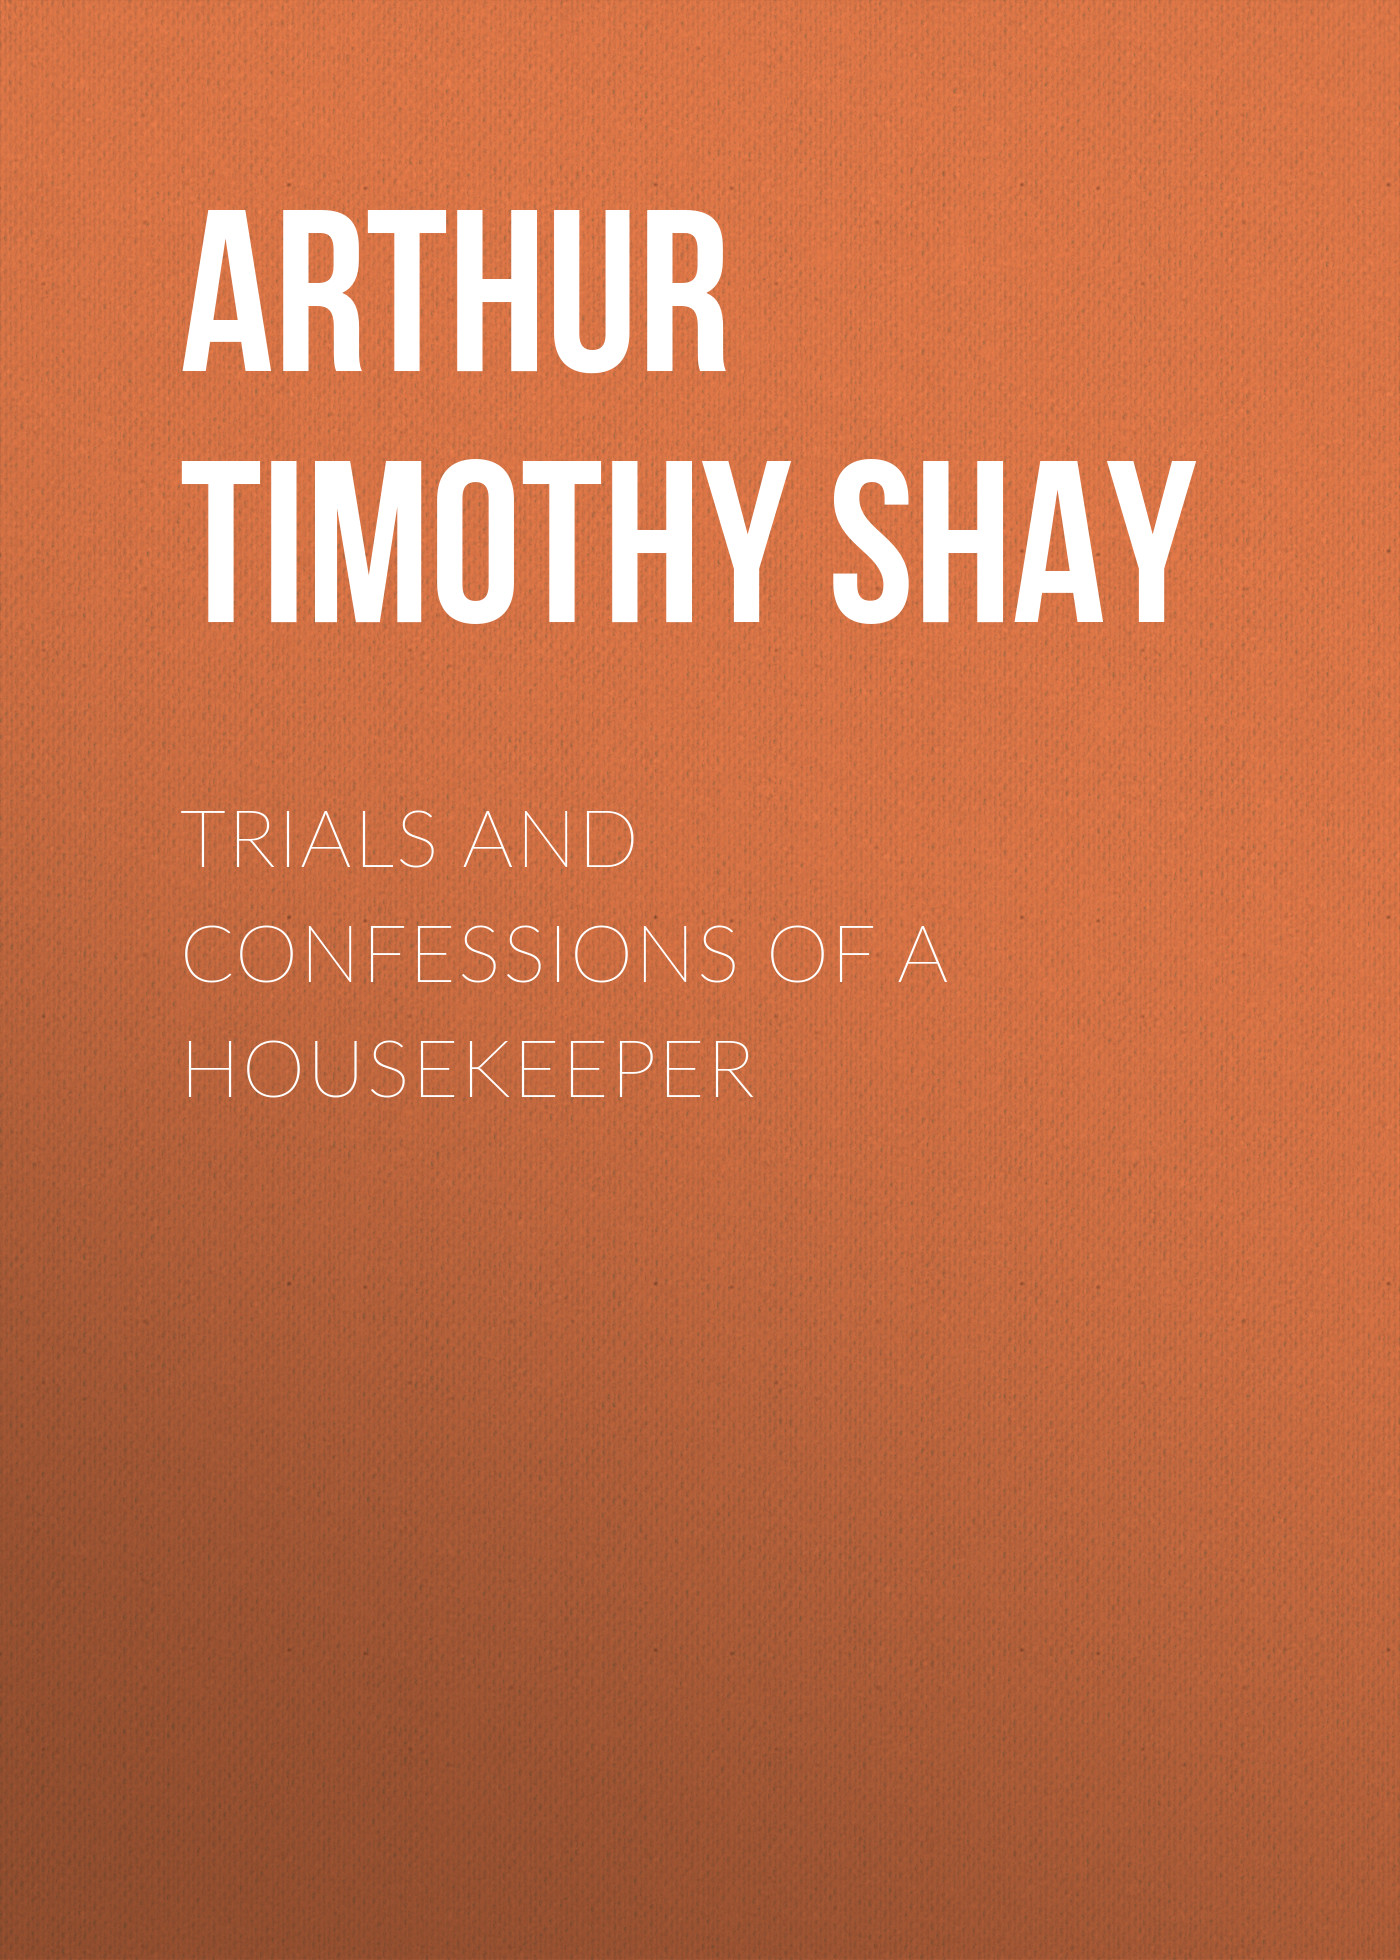 Arthur Timothy Shay Trials and Confessions of a Housekeeper john green confessions of a graphic designer